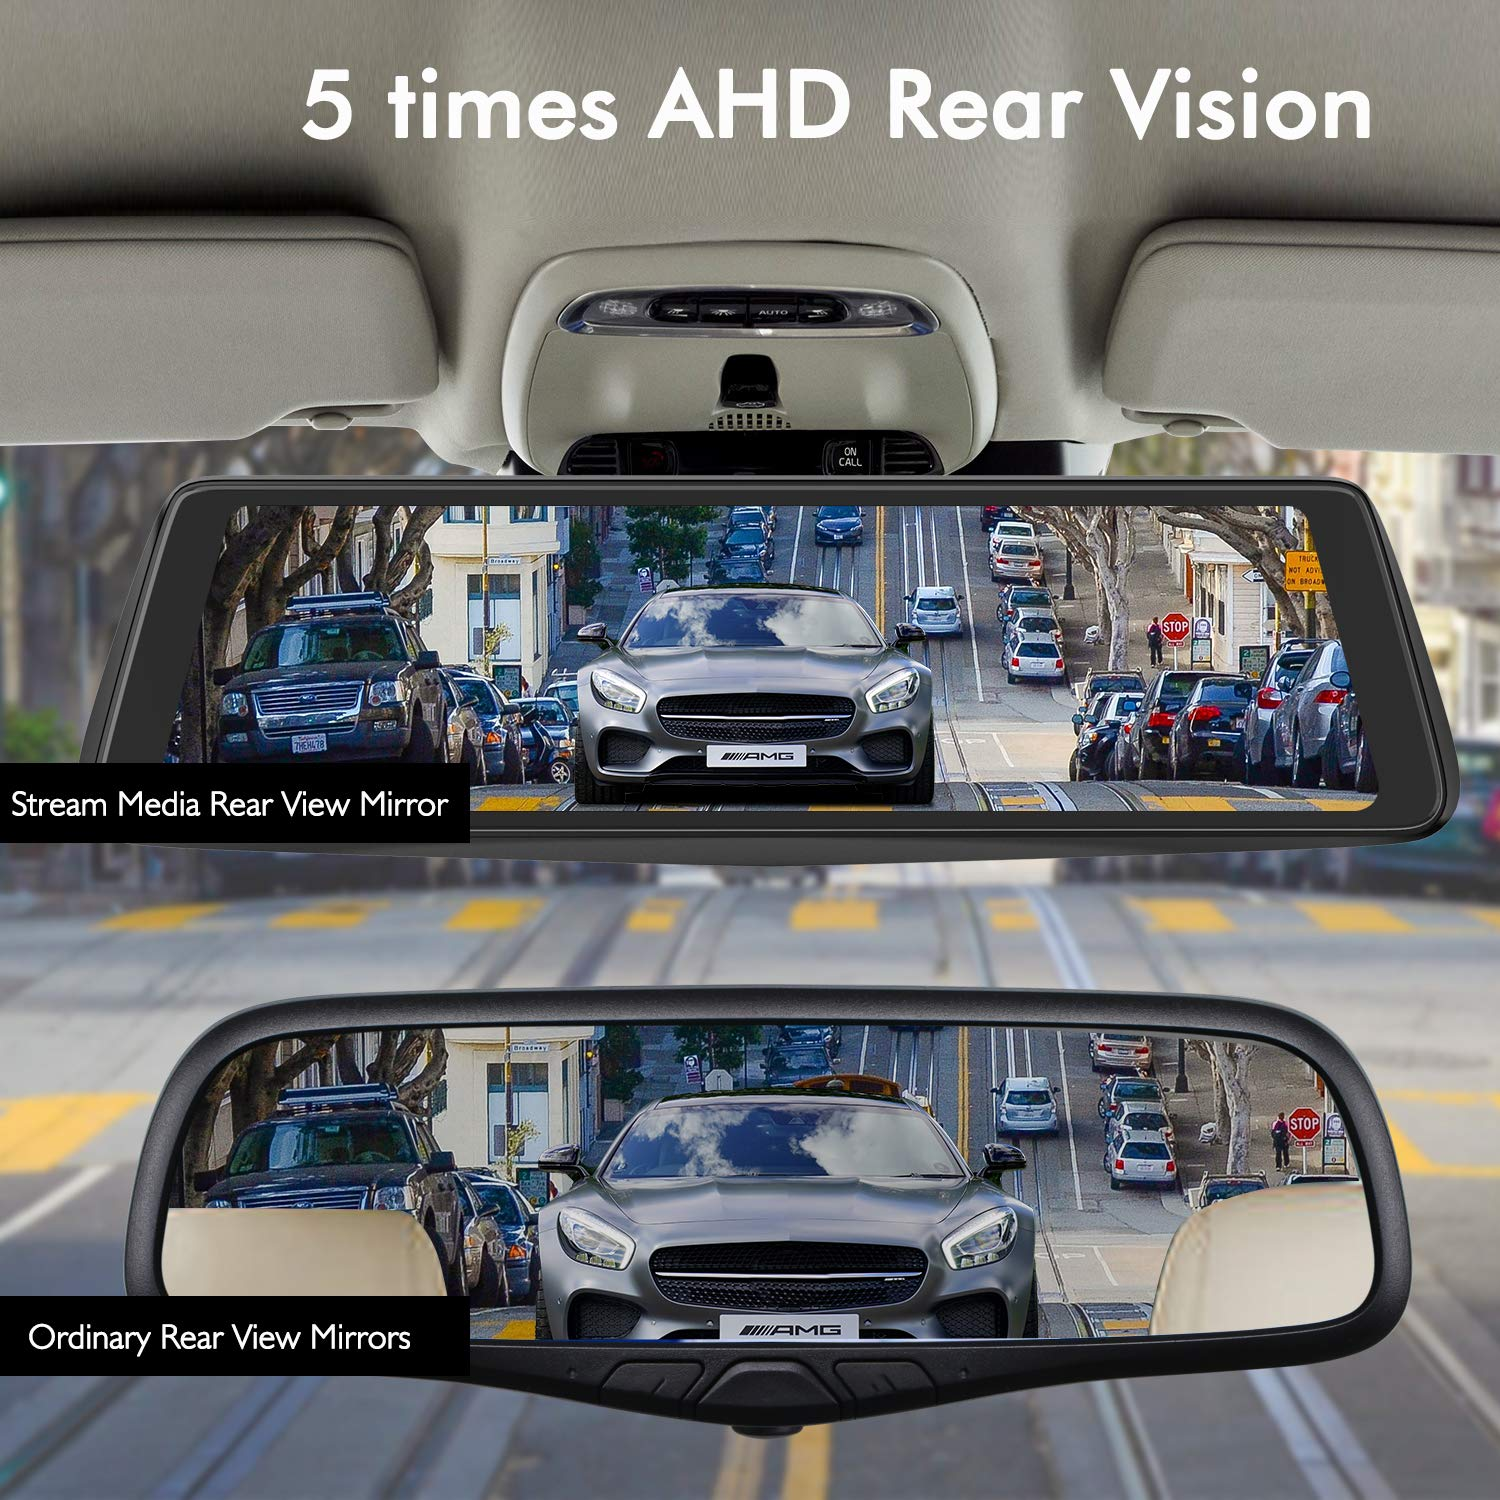 X1pro Rear View Mirror Dash Cam 988 Full Touch Screen Bmw E60 Models Fuse Box Positions Tech Dual Lens With 1296p Front And 720p Super Night Vision Stream Media Backup Camera Kit